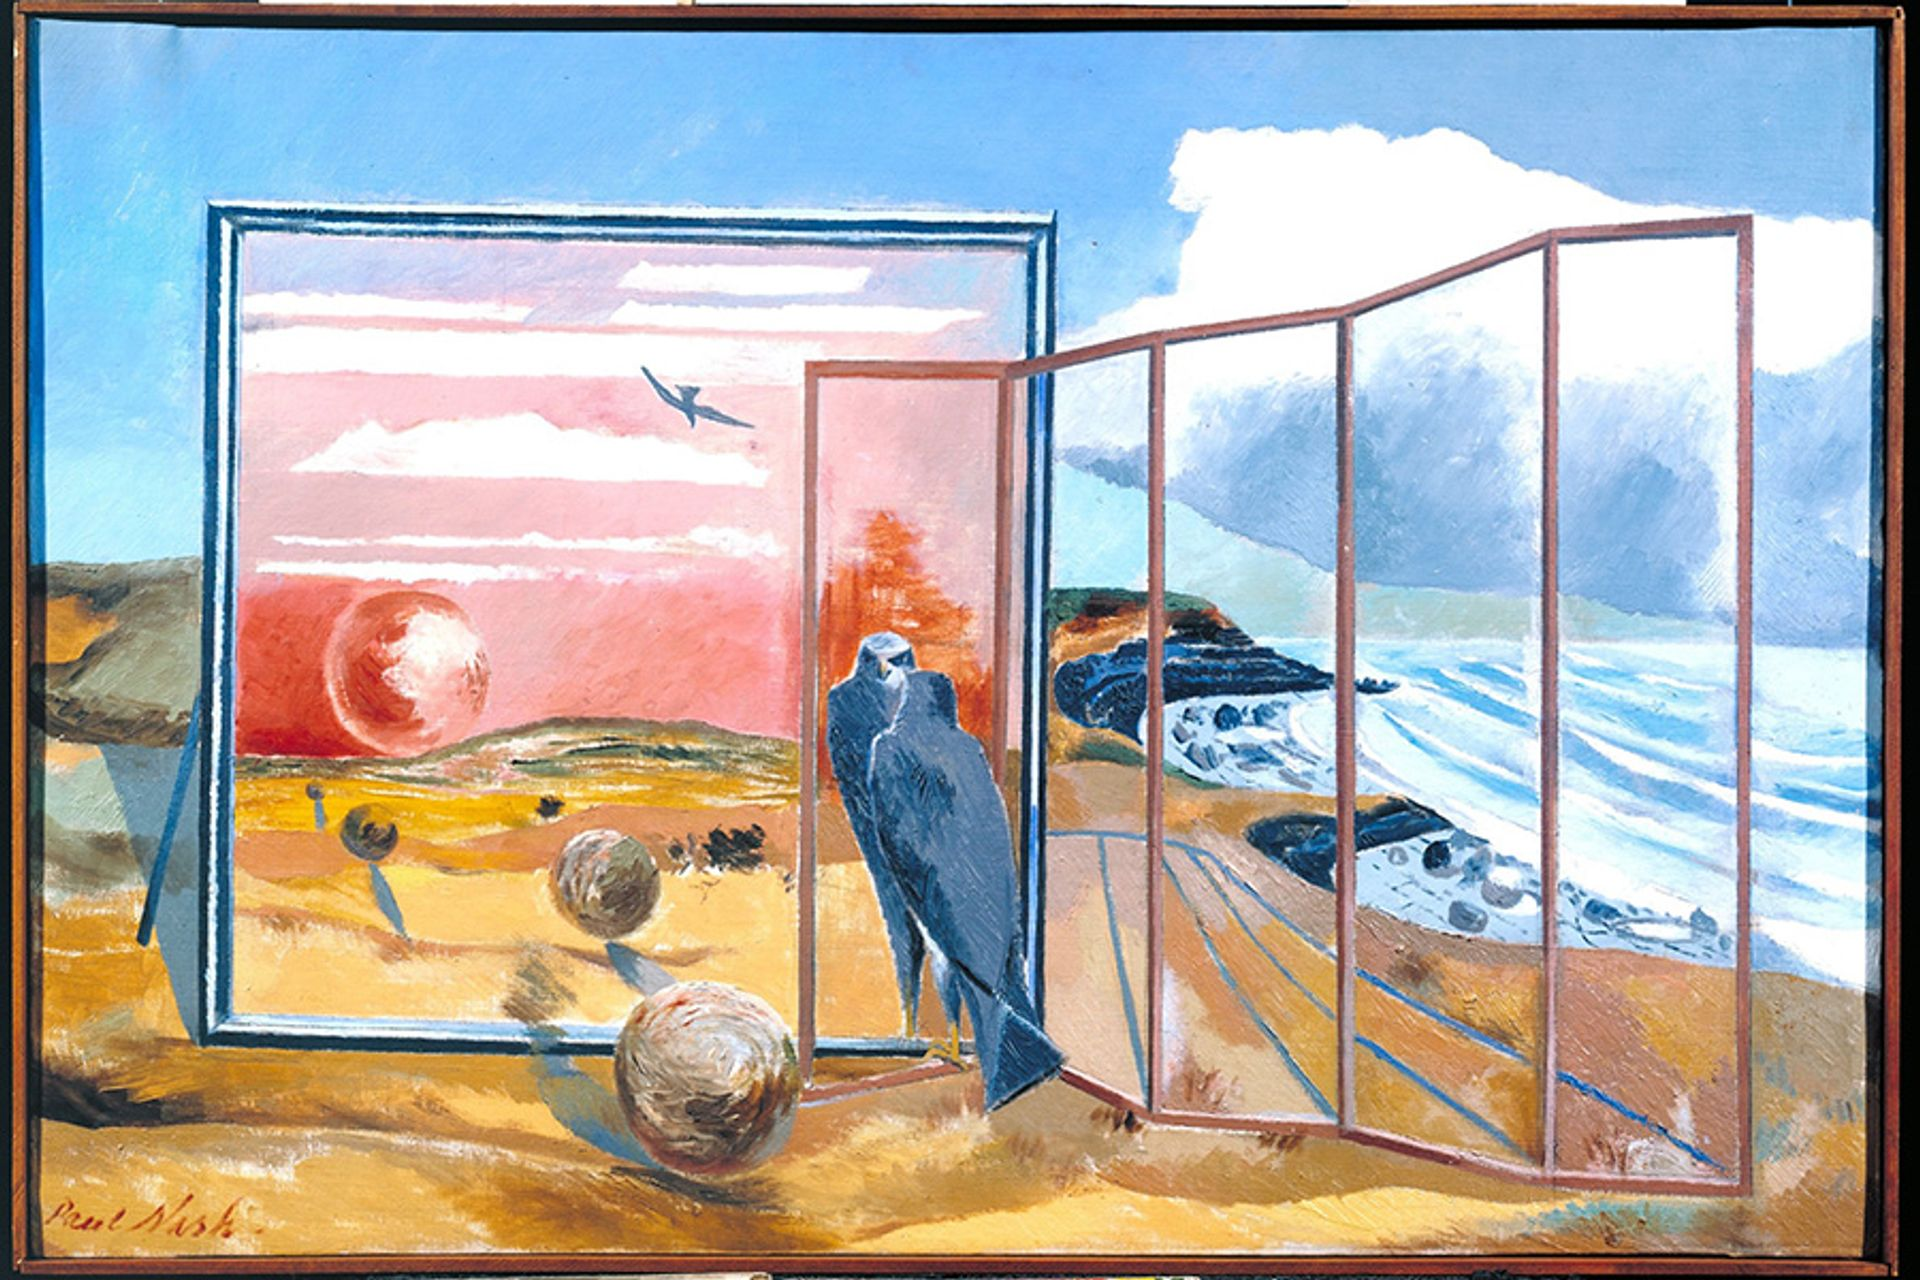 Paul Nash, Landscape from a Dream (1936-38) Courtesy Tate London